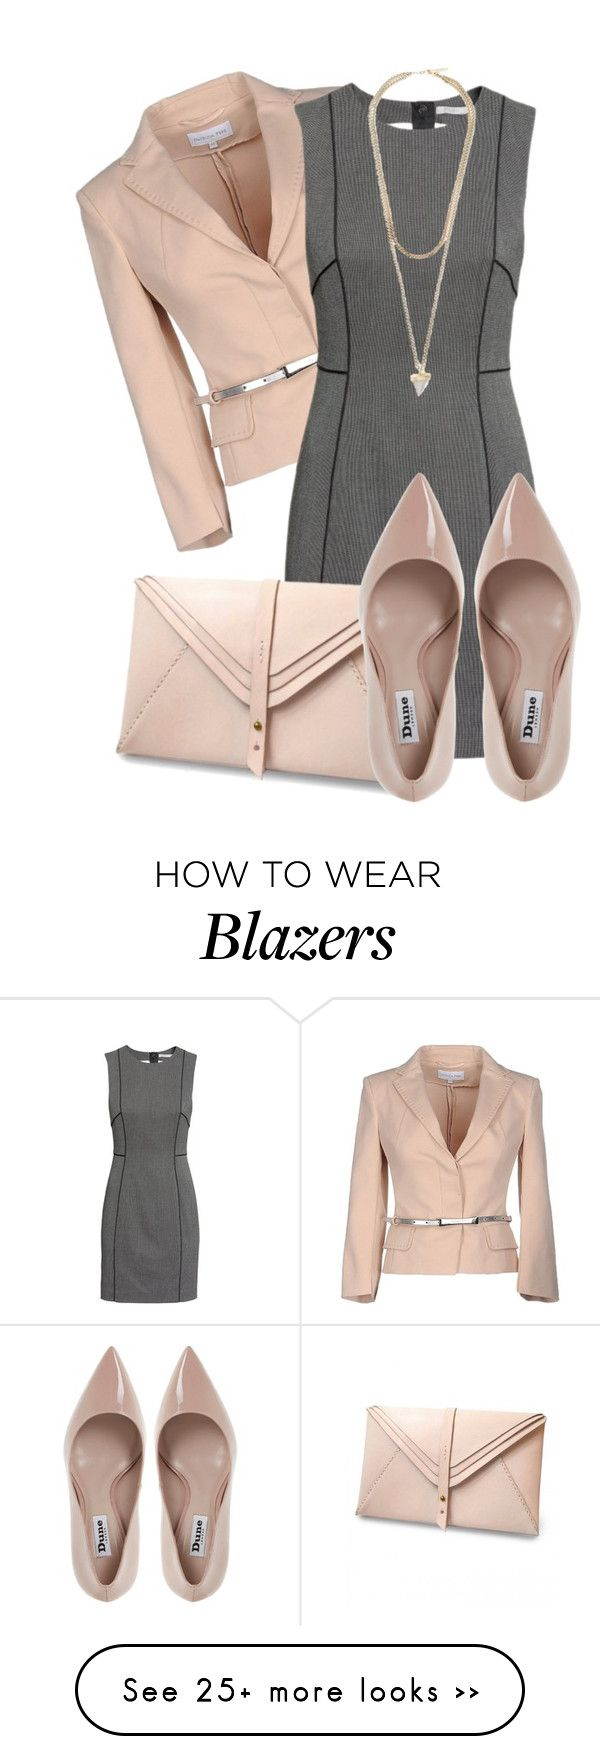 """Untitled #67"" by valentina-a-bb on Polyvore featuring Patrizia Pepe, H&M, HarLex, Dune and Givenchy"